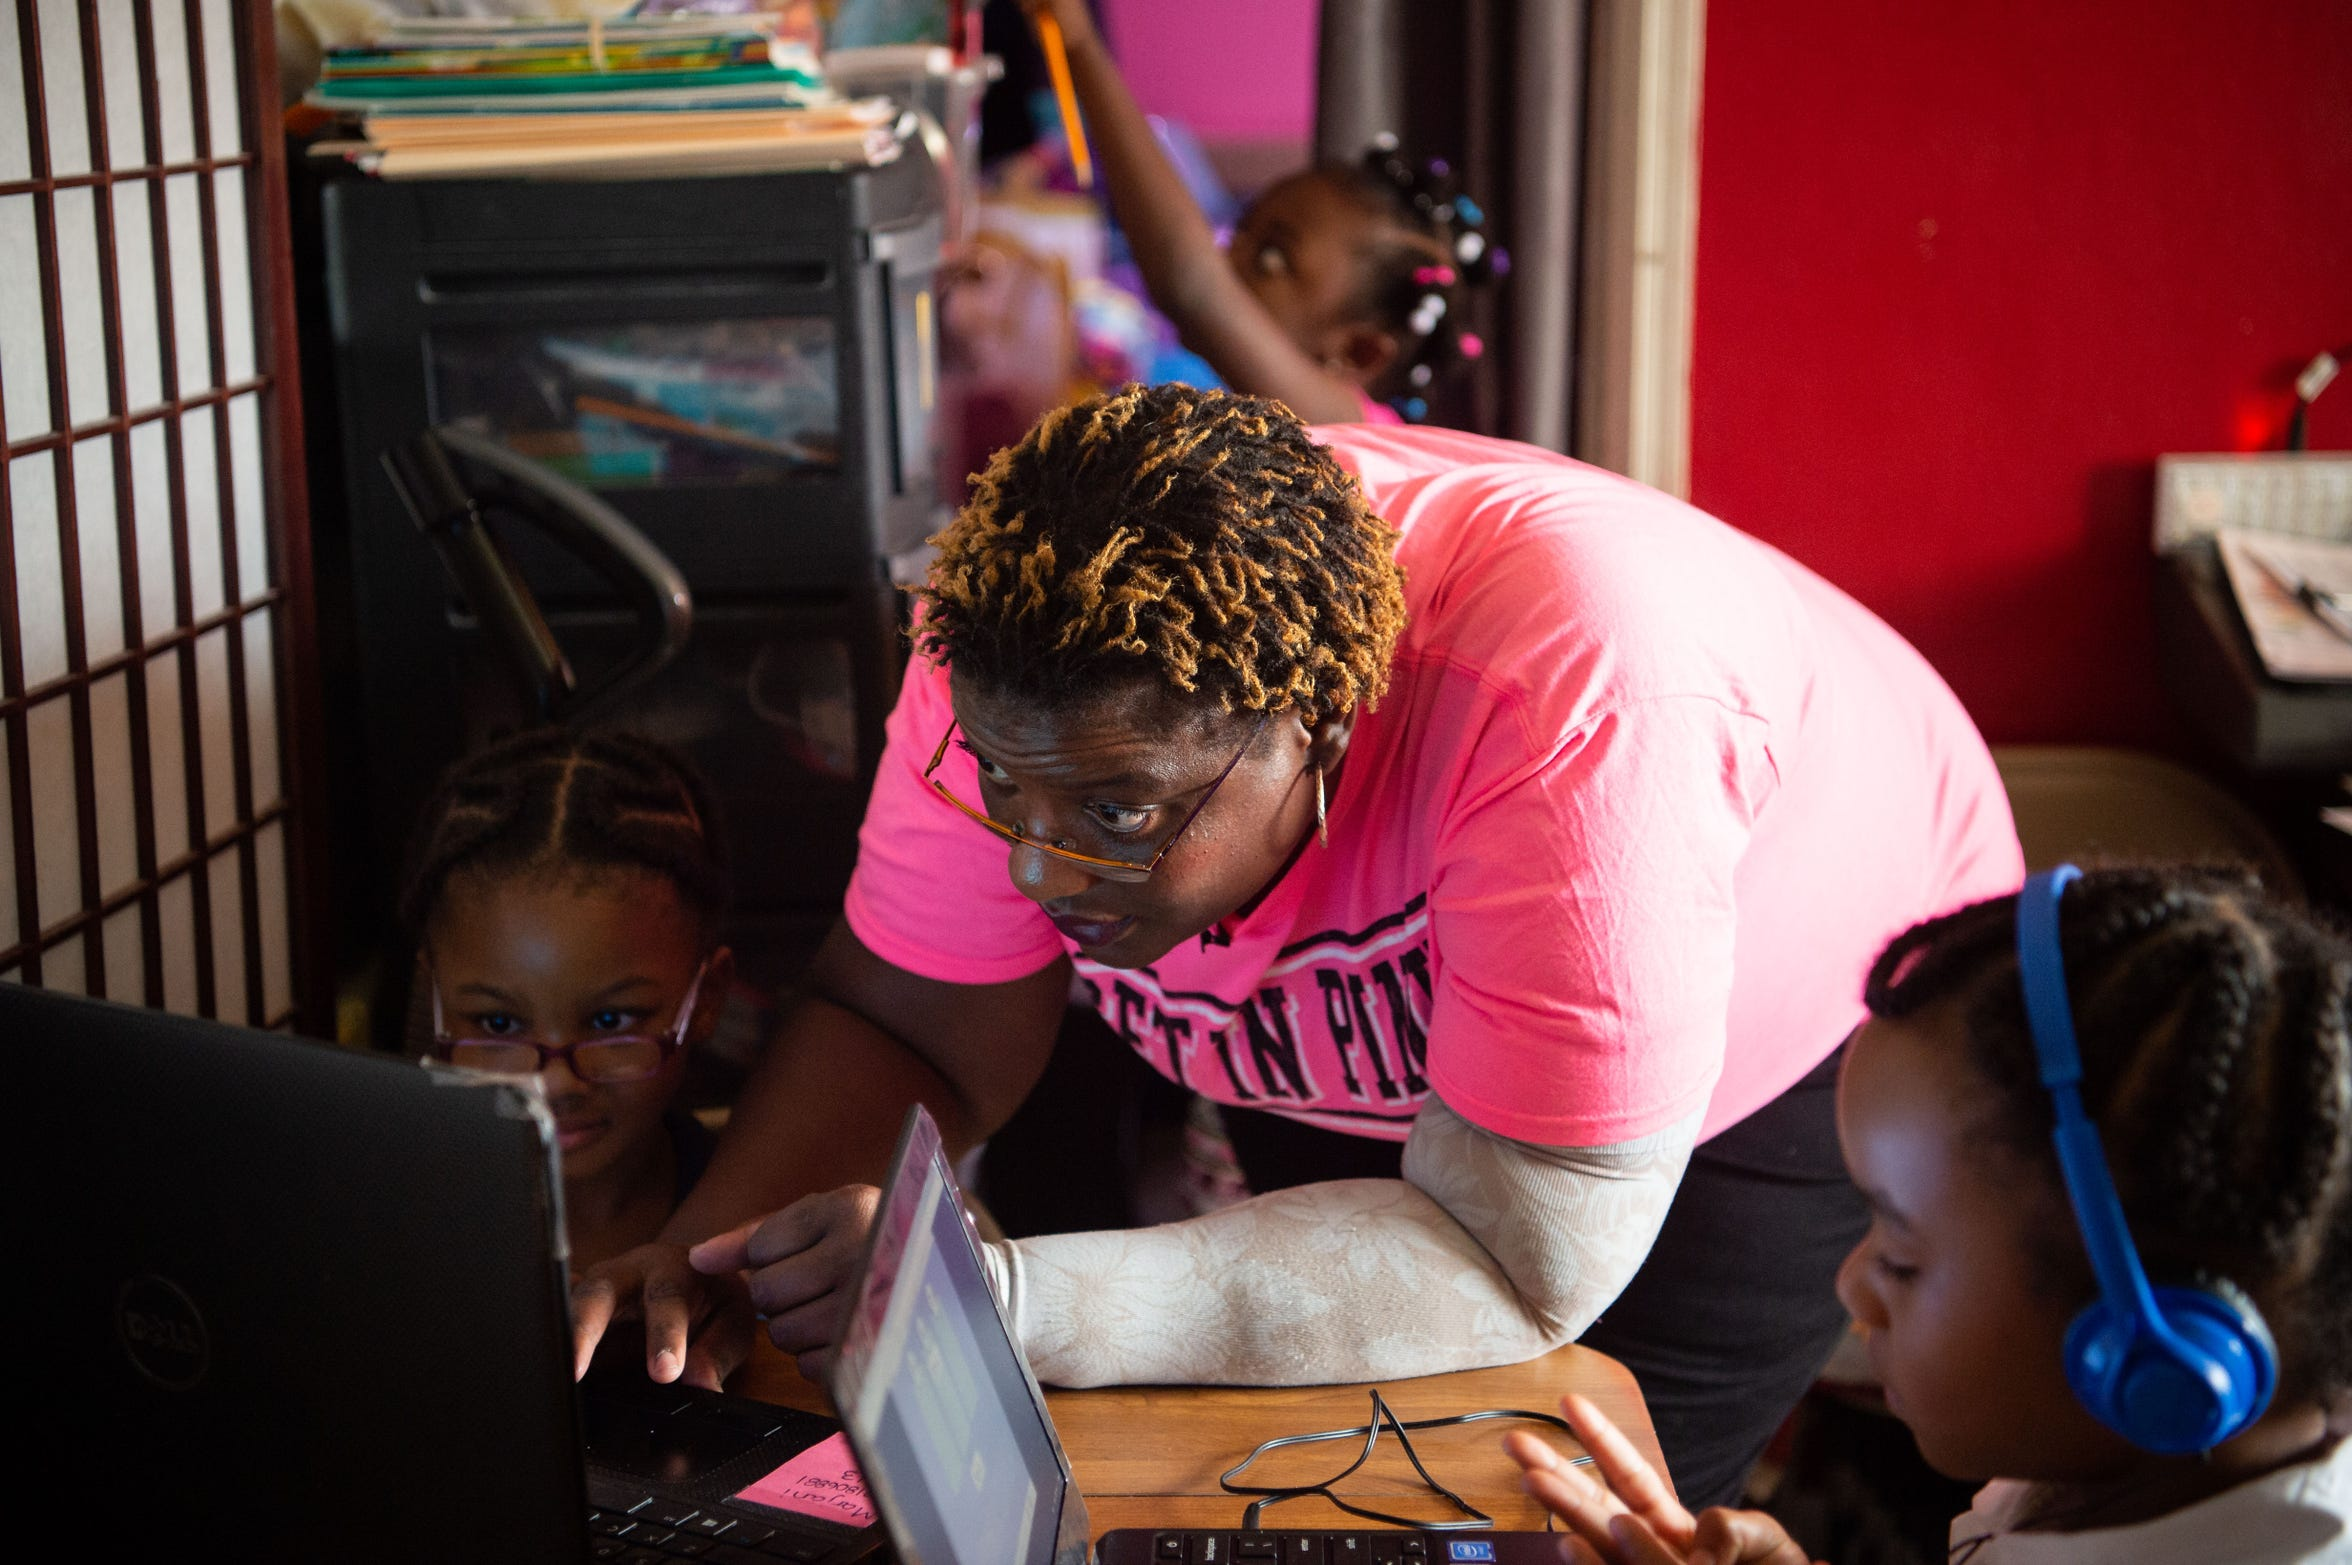 Pamela Turner, a Navy veteran and former corrections officer, helps get two of her foster children get started with schoolwork Oct. 9, 2018, at home in Fort Pierce.